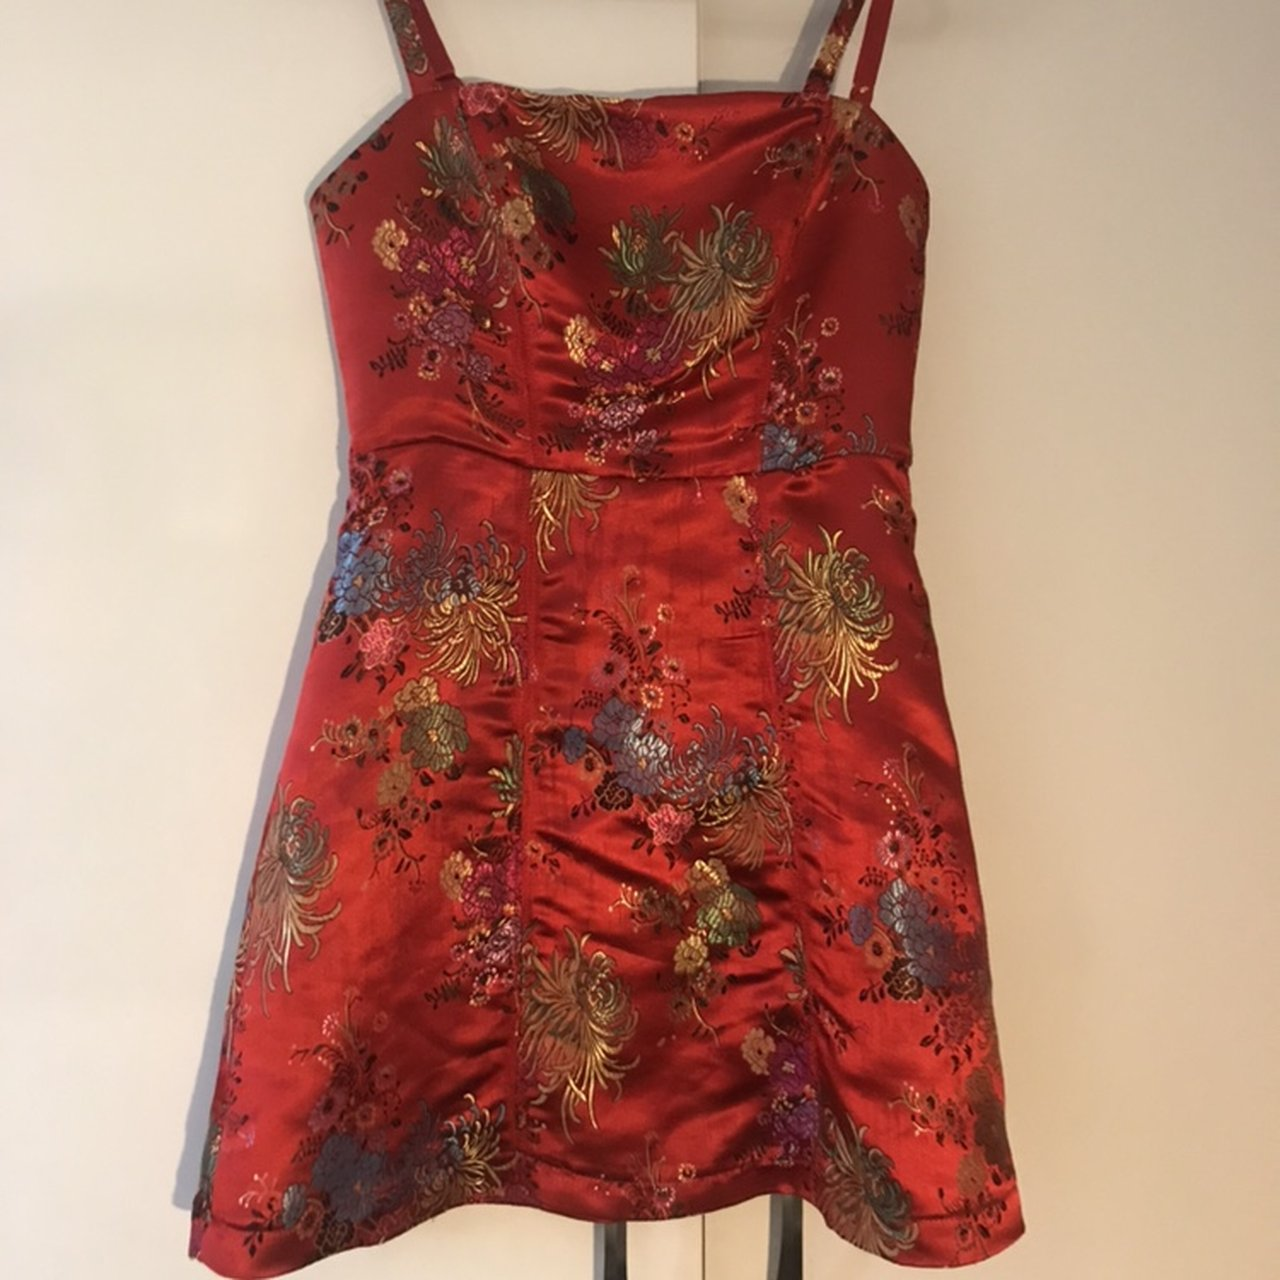 f7587a90 Shoptagr   Urban Outfitters Size 6 Dress, Only Worn Once, Great For ...